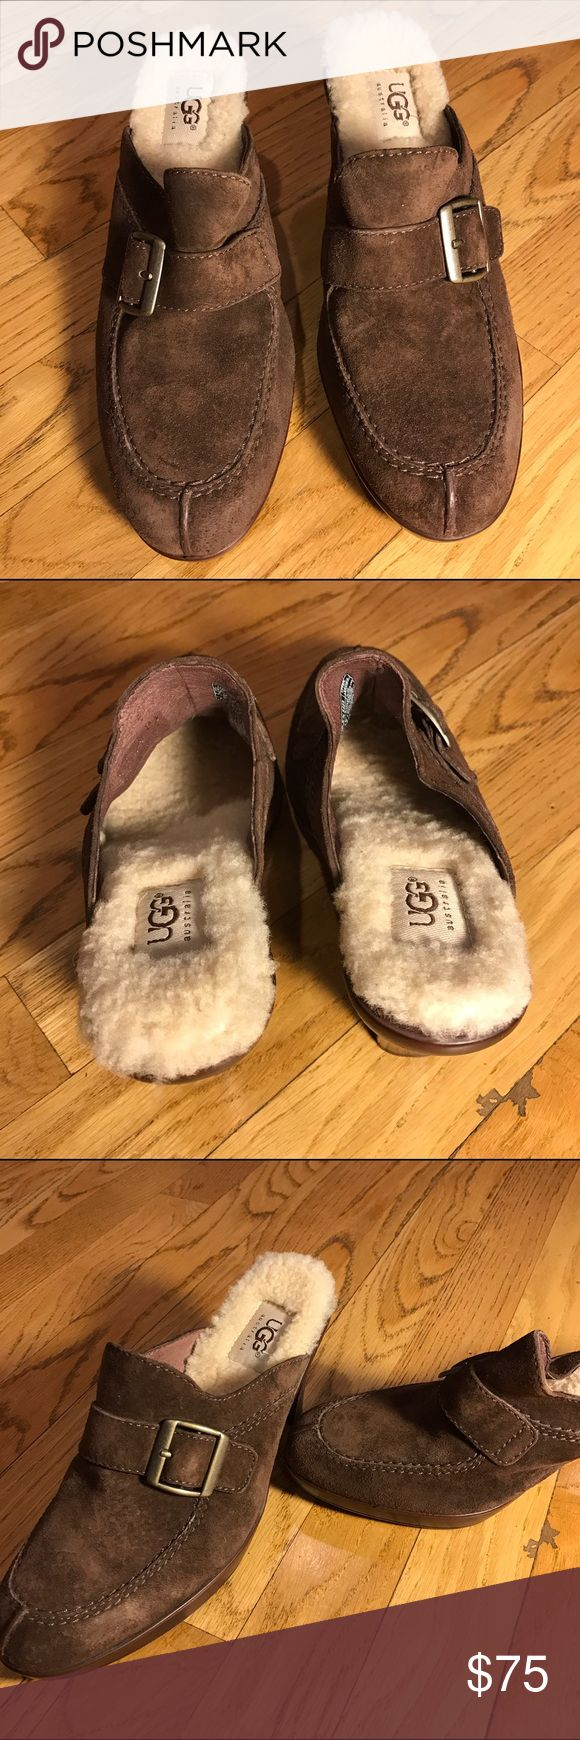 Ugg Shoes These shoes look brand new but have a minor scuff. I am selling for a client. So I don't know the background The bottoms and fur look like they have never been worn  brown suede UGG Shoes Mules & Clogs